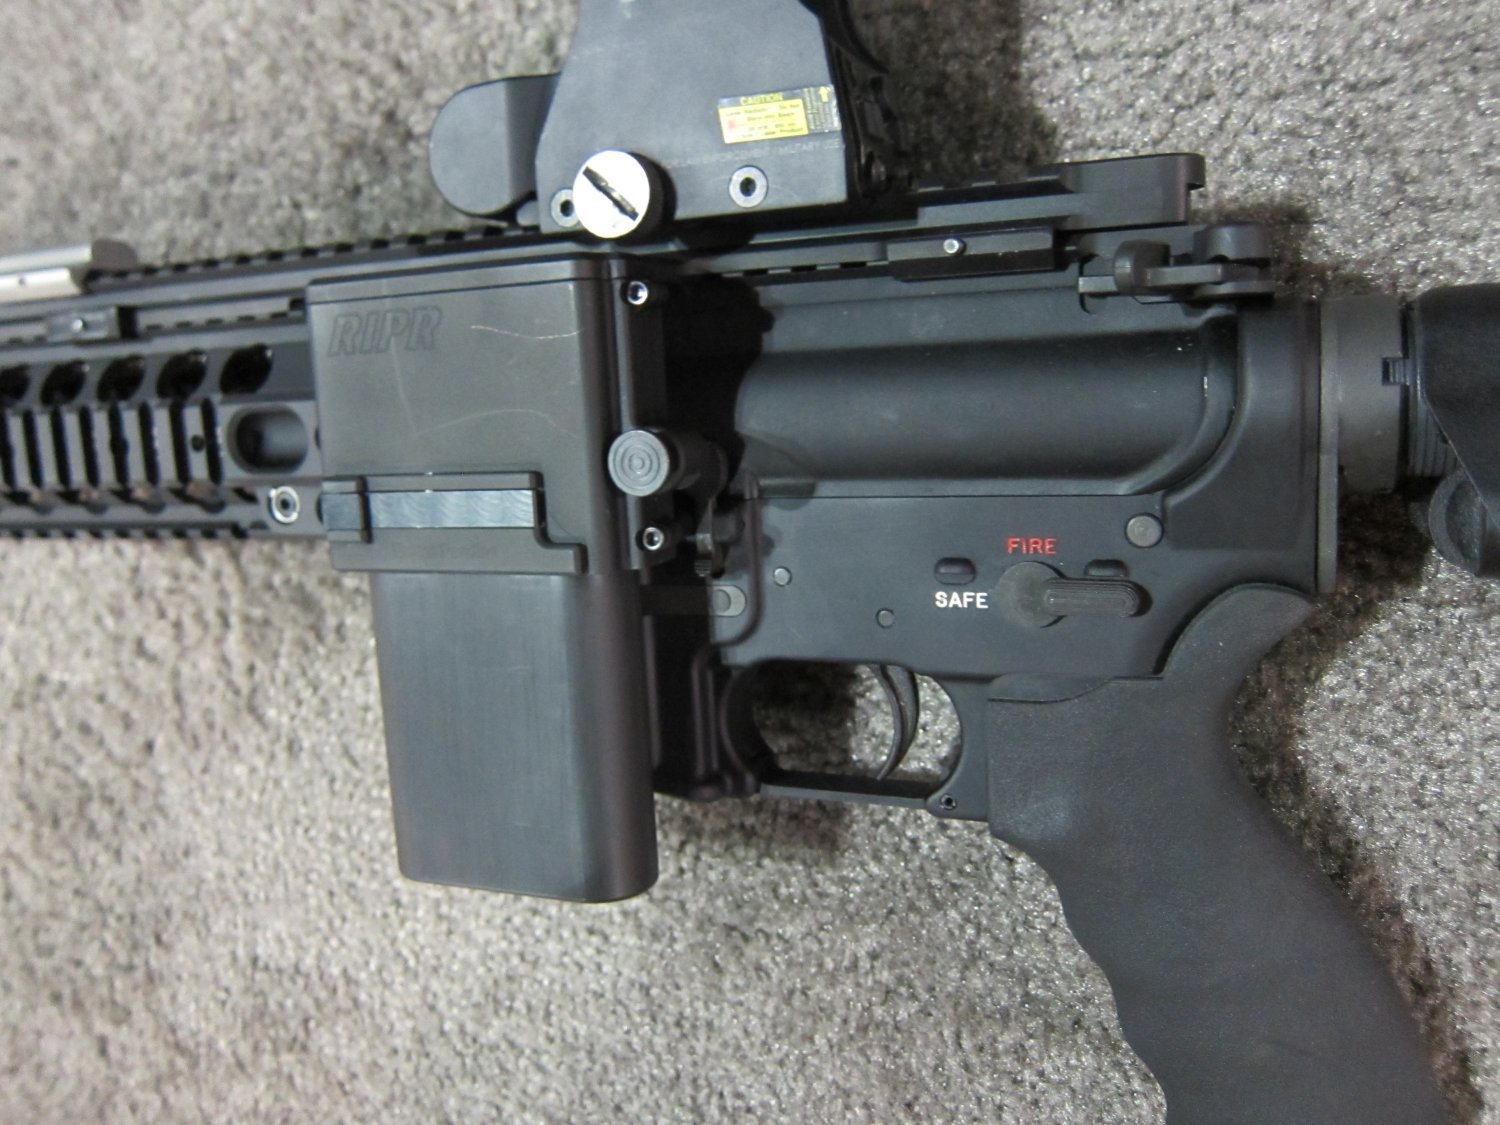 Reset RIPR Rifle Integrated Power Rail 4 <!  :en  >Reset RIPR (Rifle Integrated Power Rail): Central Power Source for Tactical AR Rifle/Carbine/SBR Accessories<!  :  >